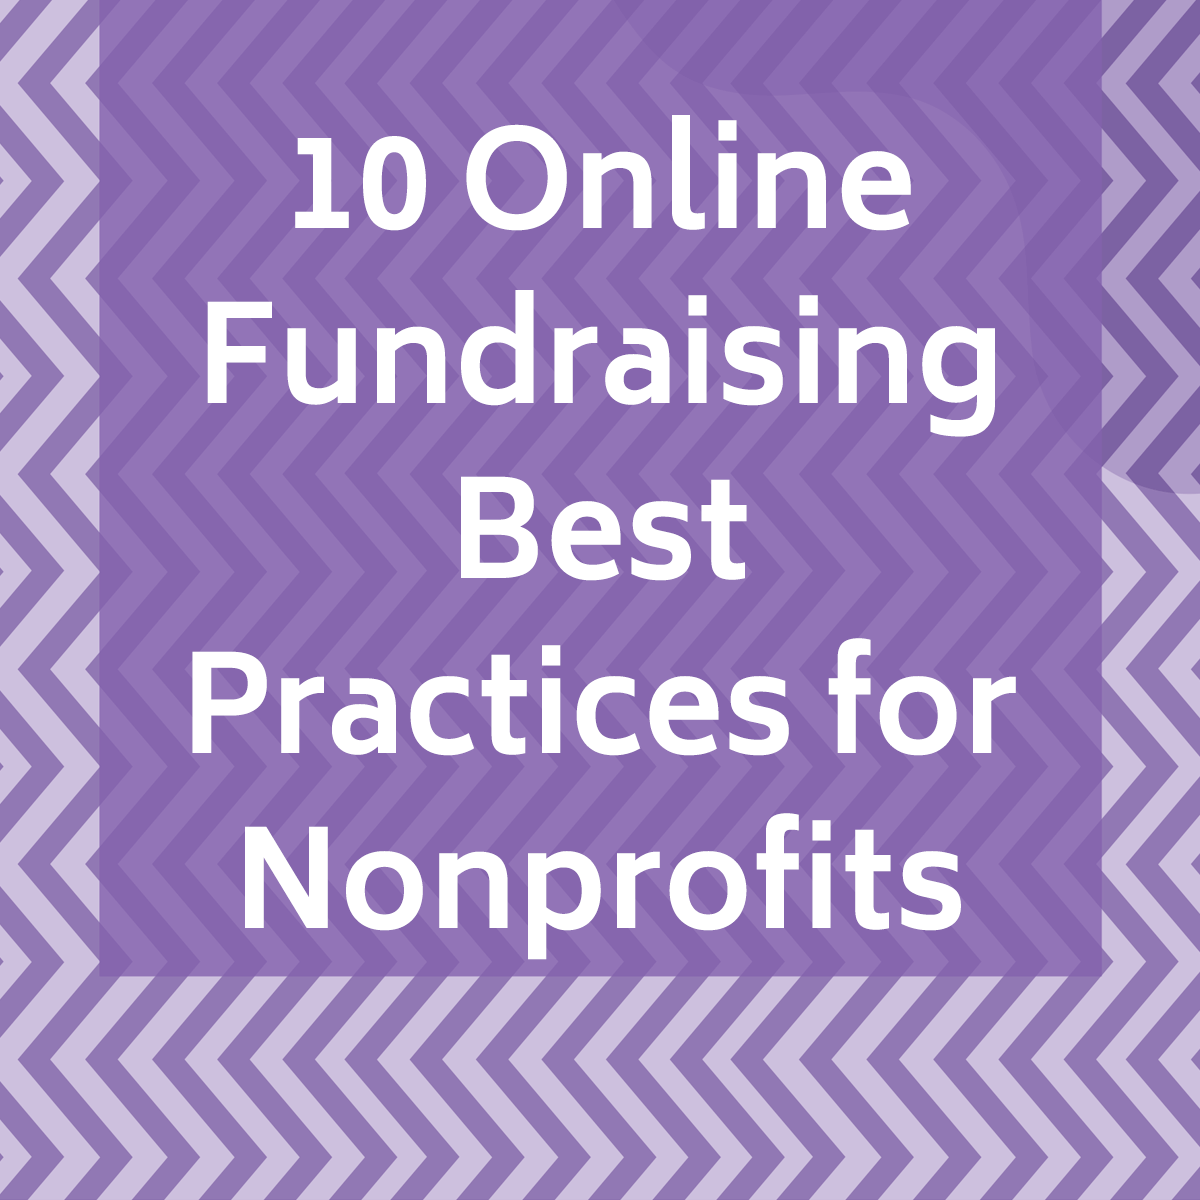 10 Online Fundraising Best Practices for Nonprofits